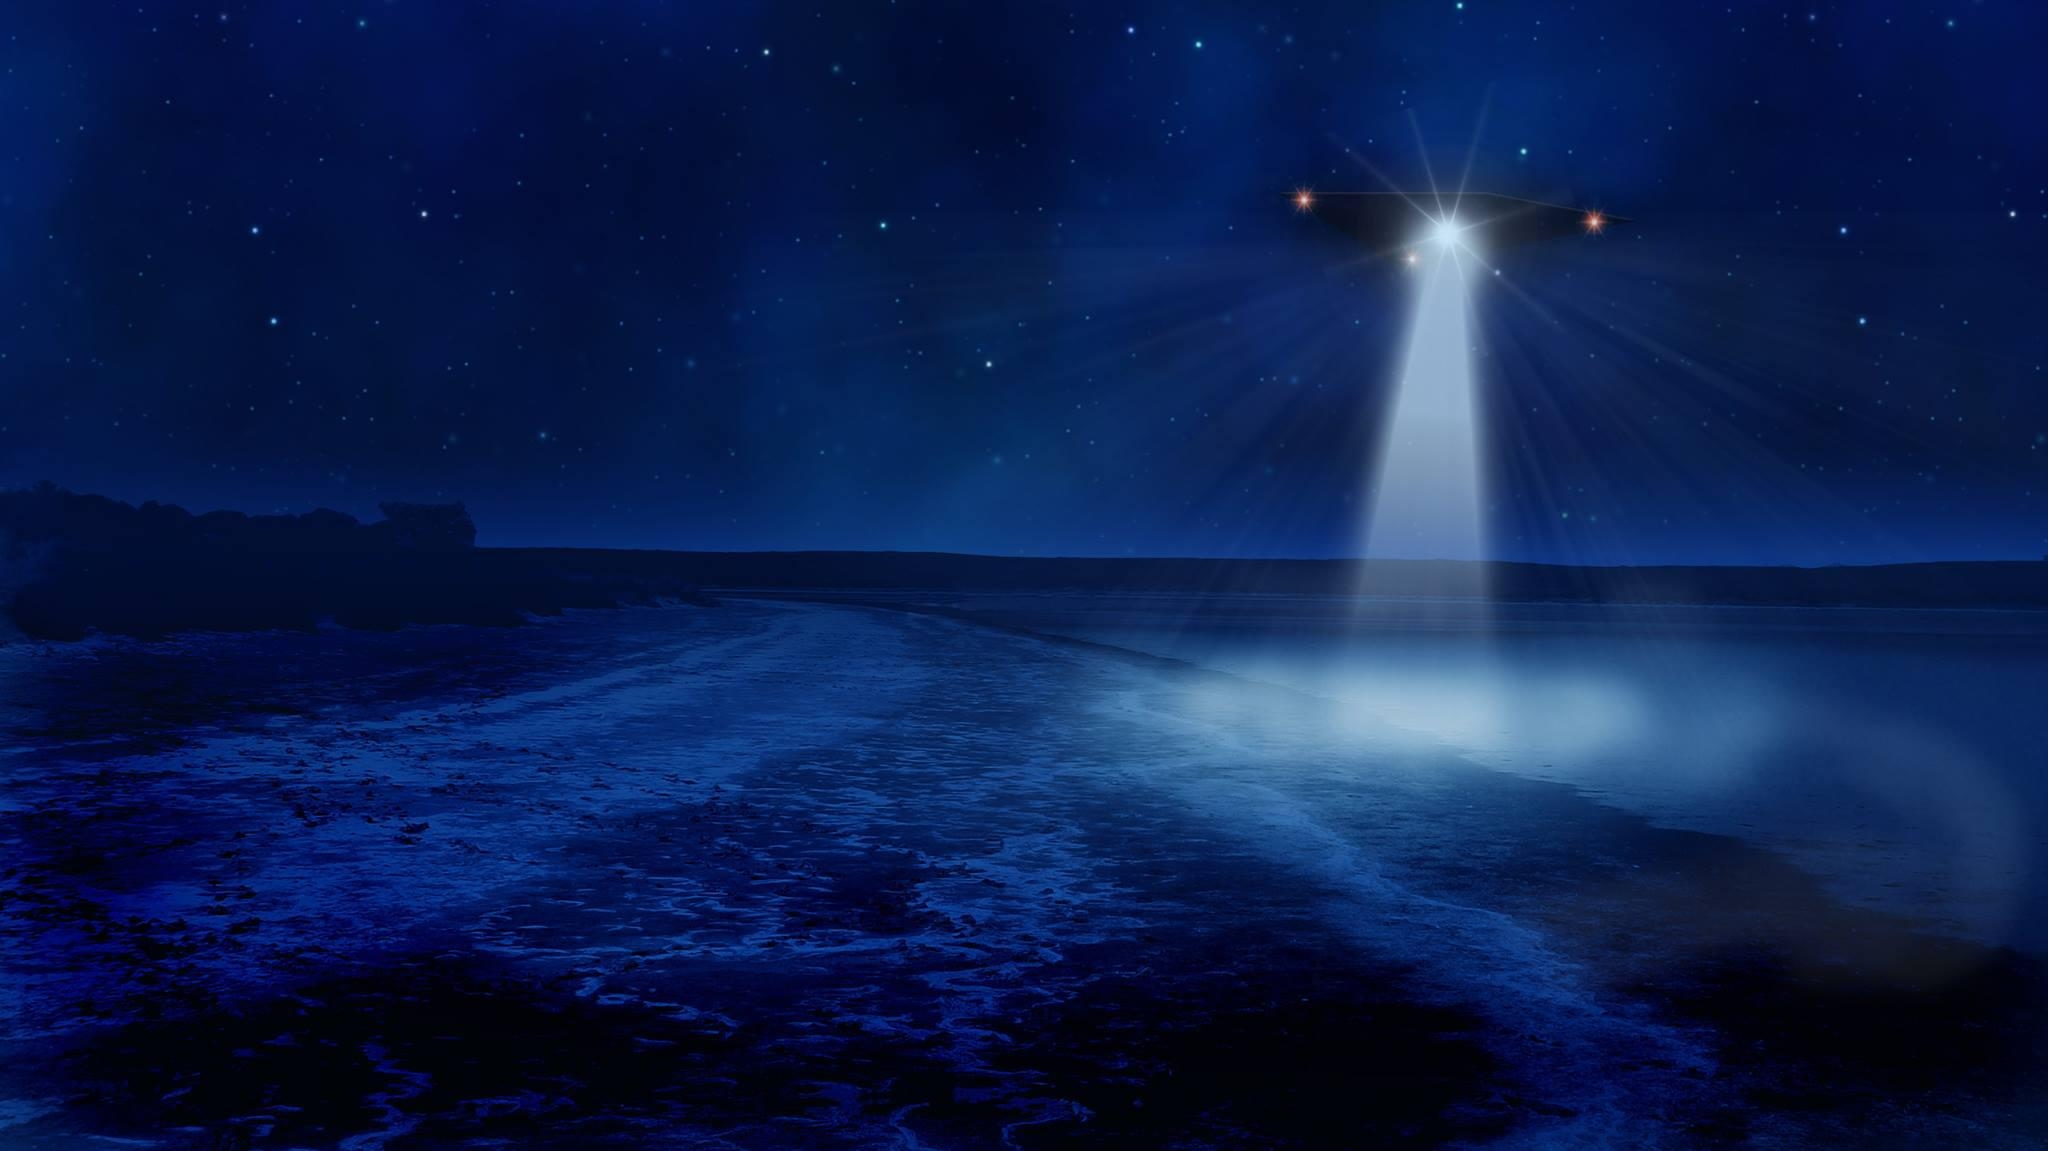 Ufo alien artwork   134663   High Quality and Resolution Wallpapers 2048x1151